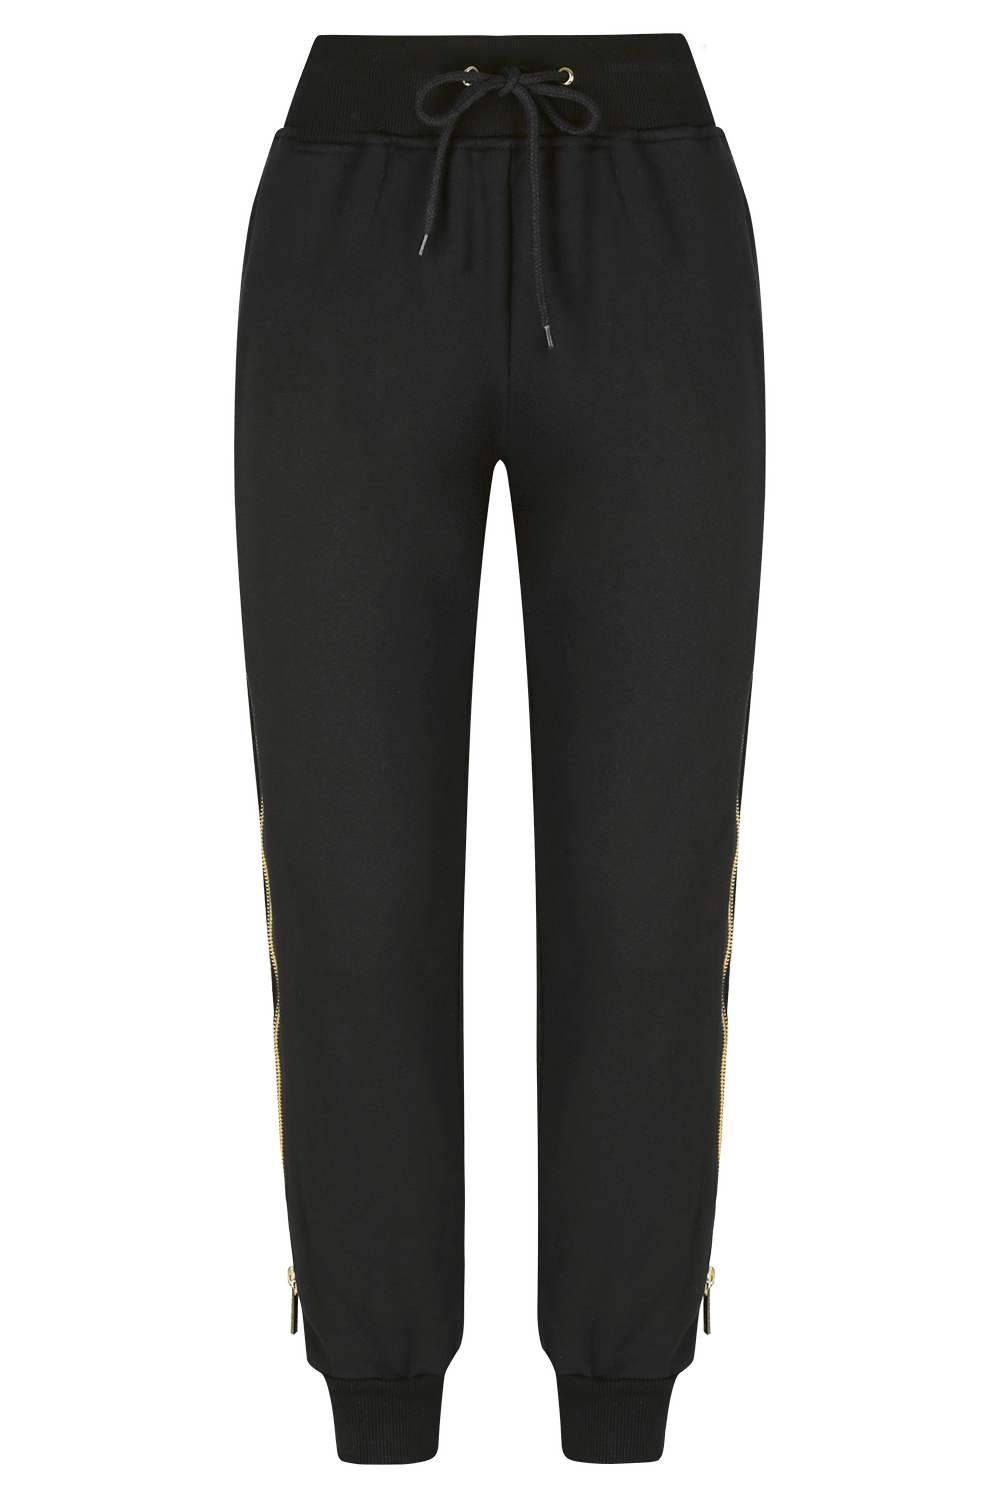 SLIDE AWAY Jogger Pants- BLK/GLD - HAUS OF SONG